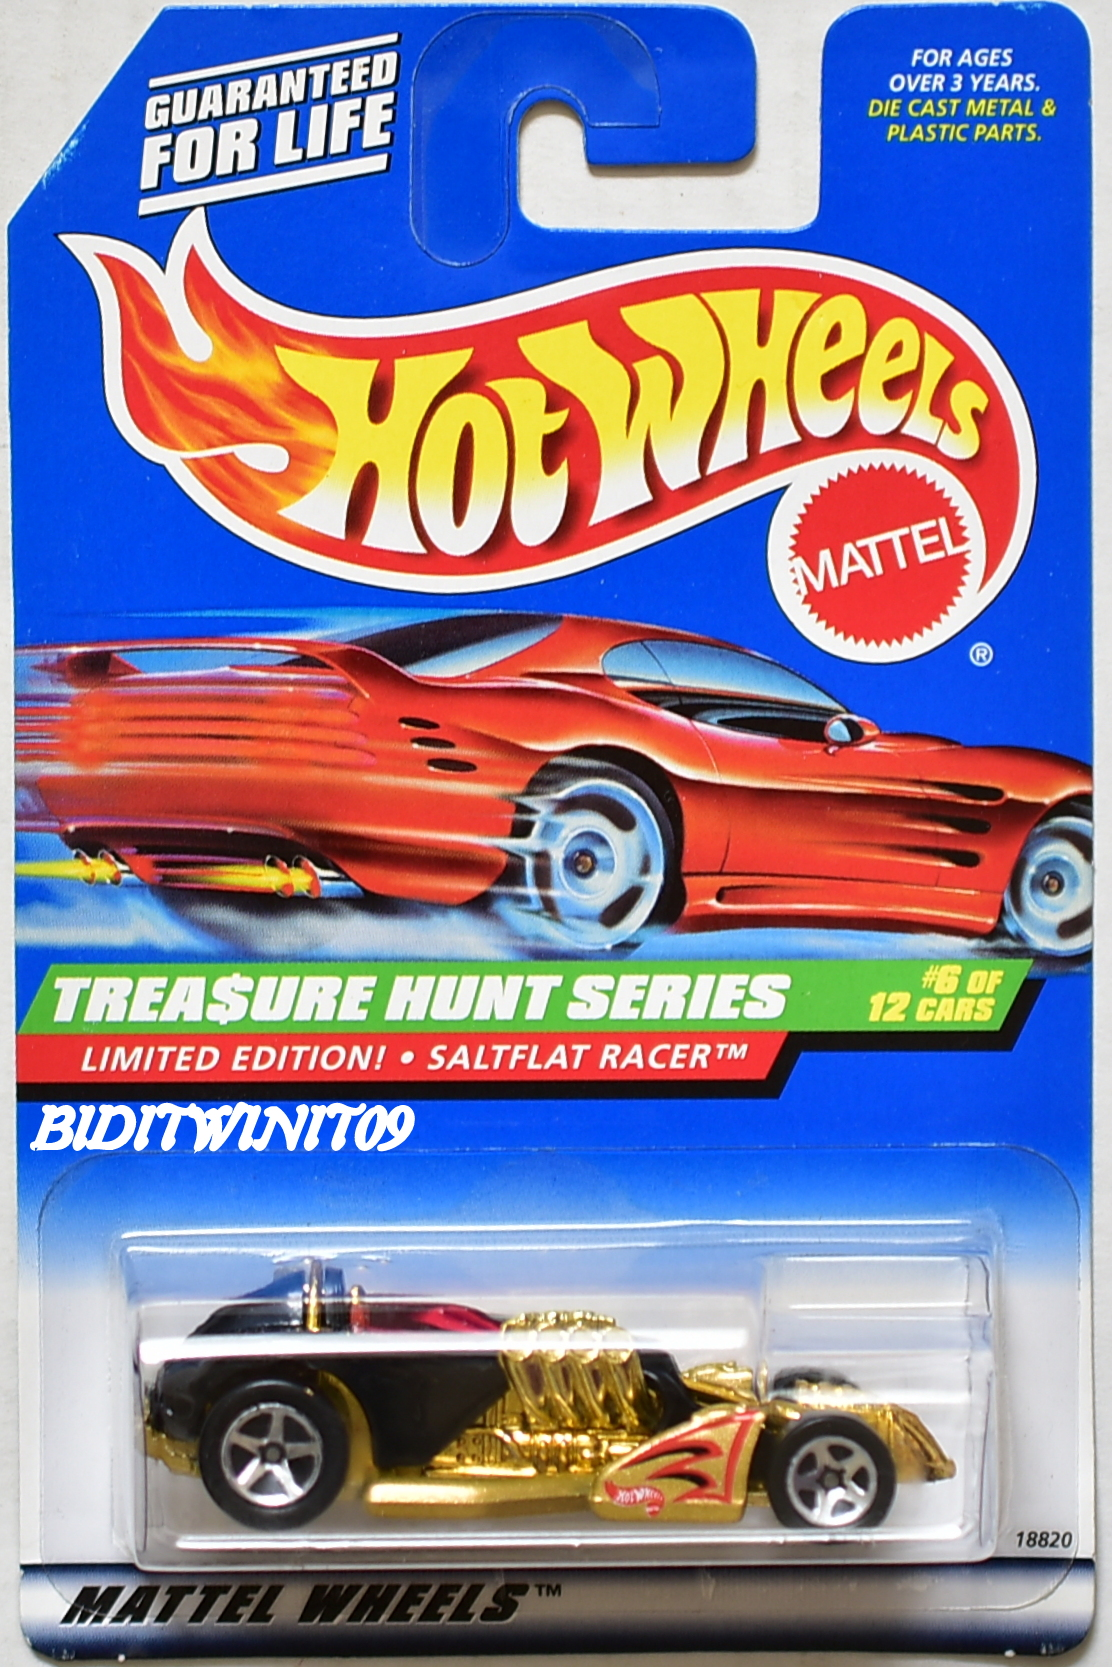 HOT WHEELS 1998 TREASURE HUNT SERIES LIMITED EDITION SALTFLAT RACER - Click Image to Close